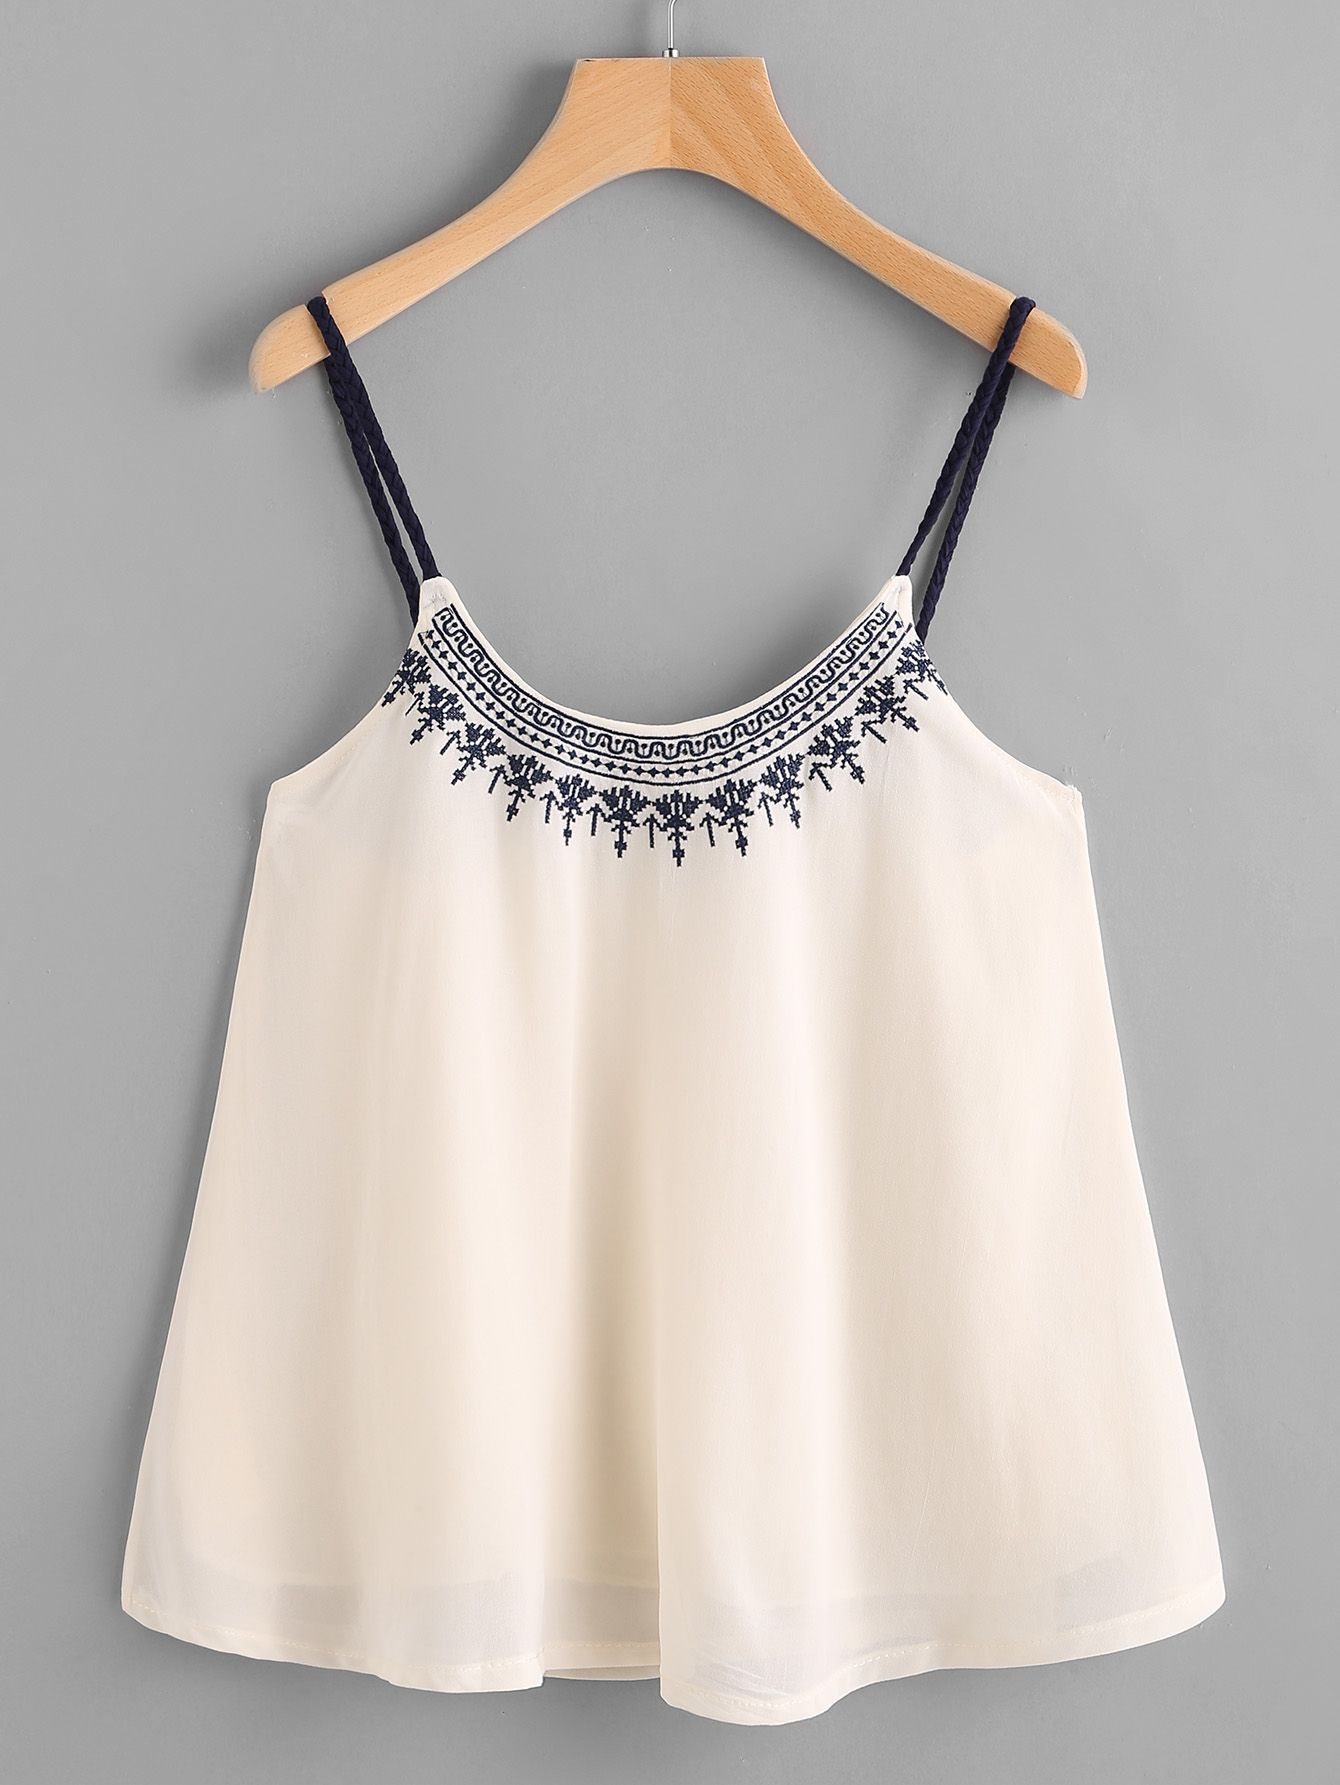 37400c426165a2 Shop Embroidered Chiffon Cami Top online. SheIn offers Embroidered Chiffon Cami  Top   more to fit your fashionable needs.